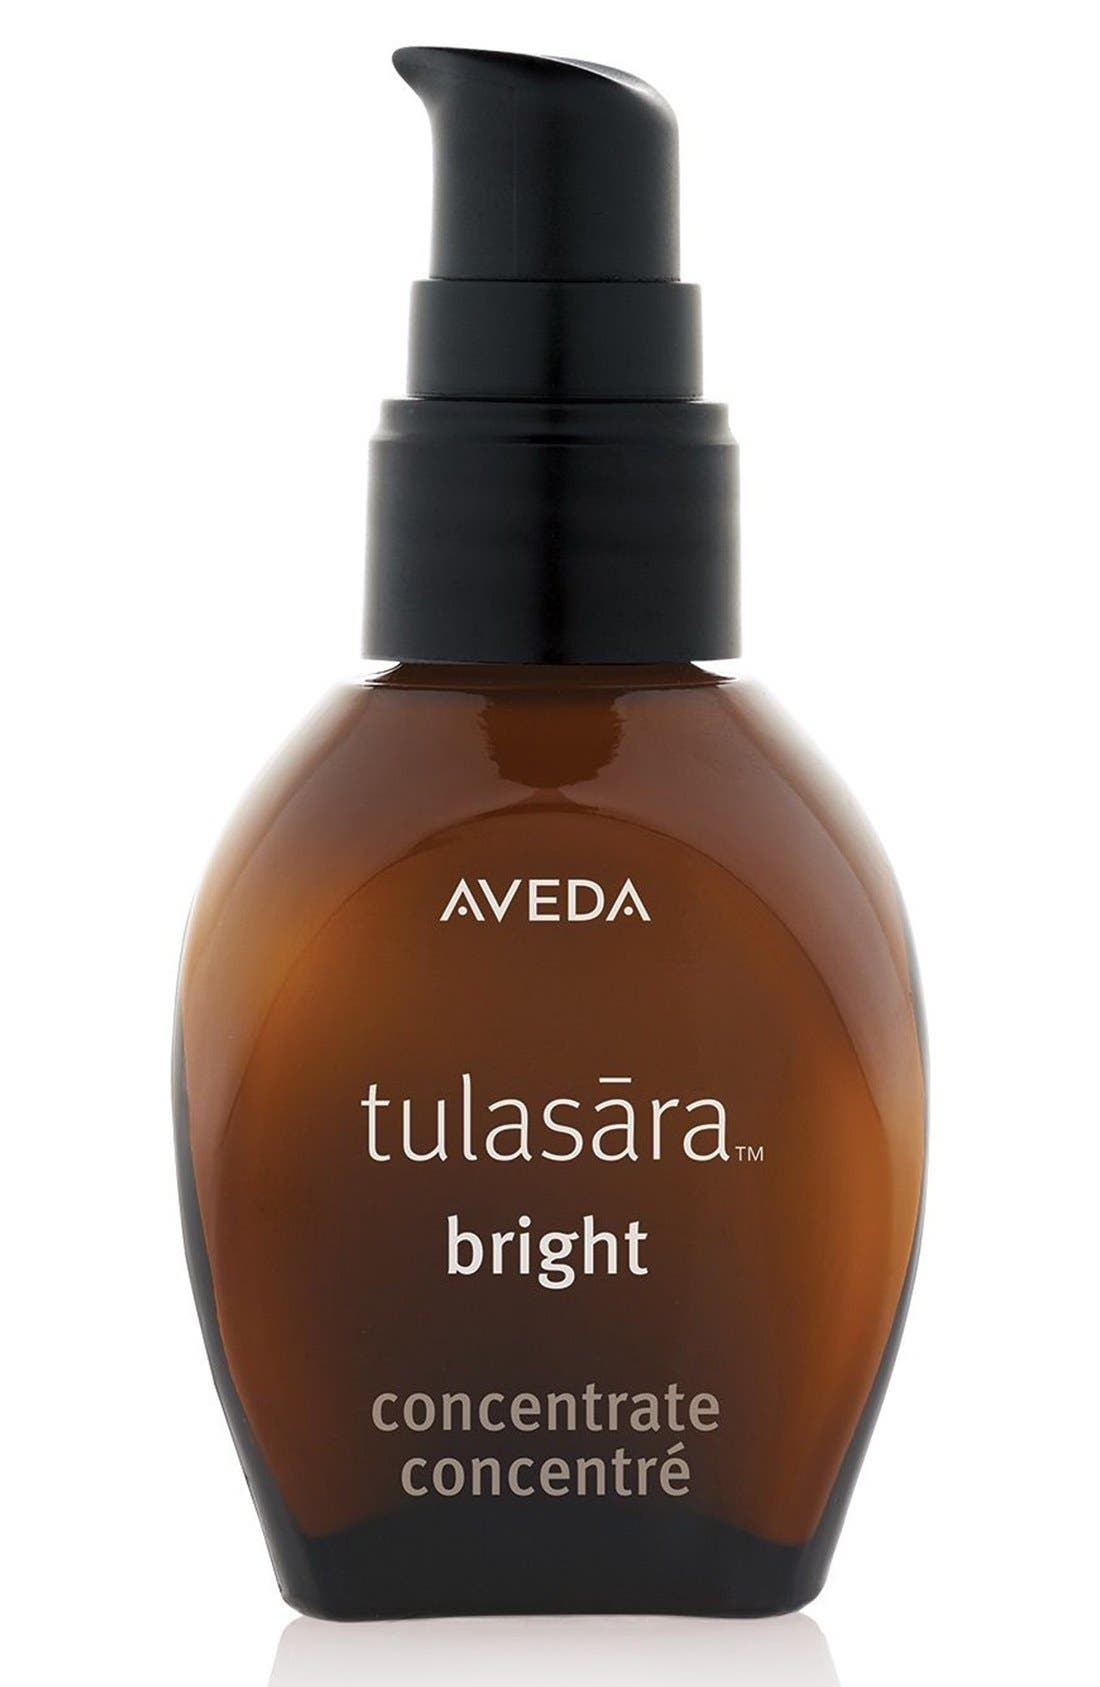 Aveda 'tulasara™ bright' Concentrate